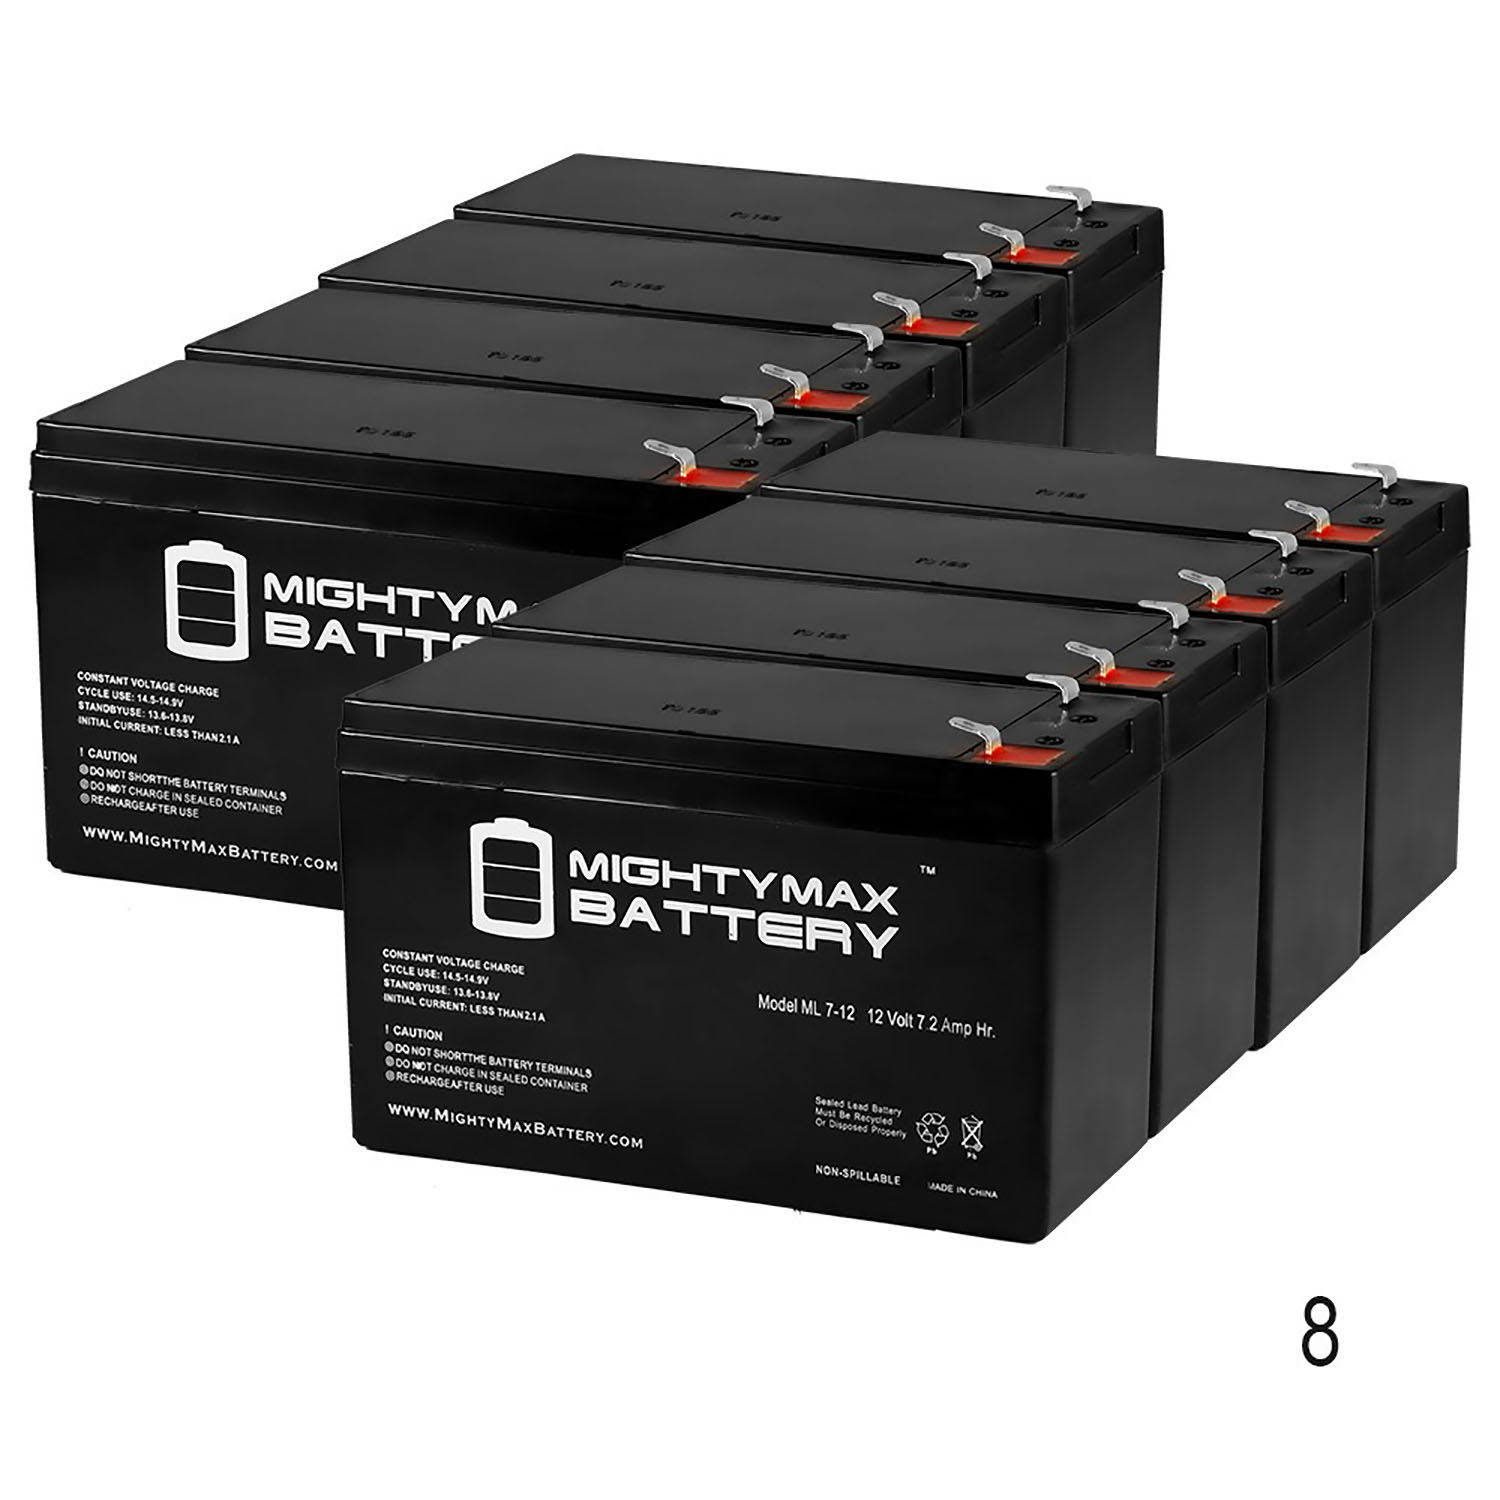 Mighty Max Battery 12V 7.2AH SLA Replacement Battery for Liebert GXT3-1500RT120-6 Pack Brand Product